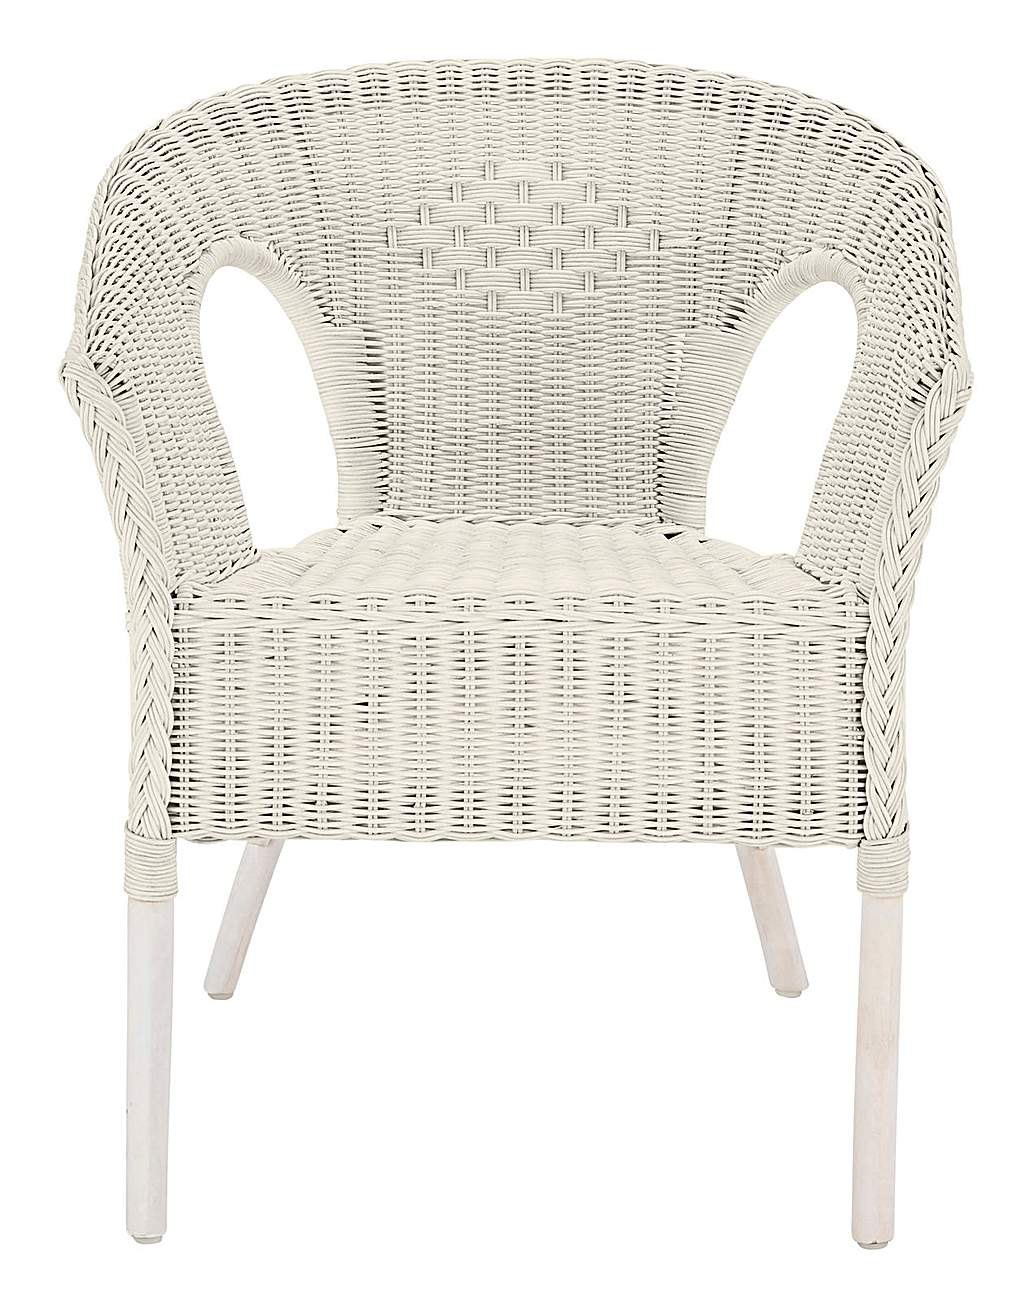 Wicker Chair J D Williams